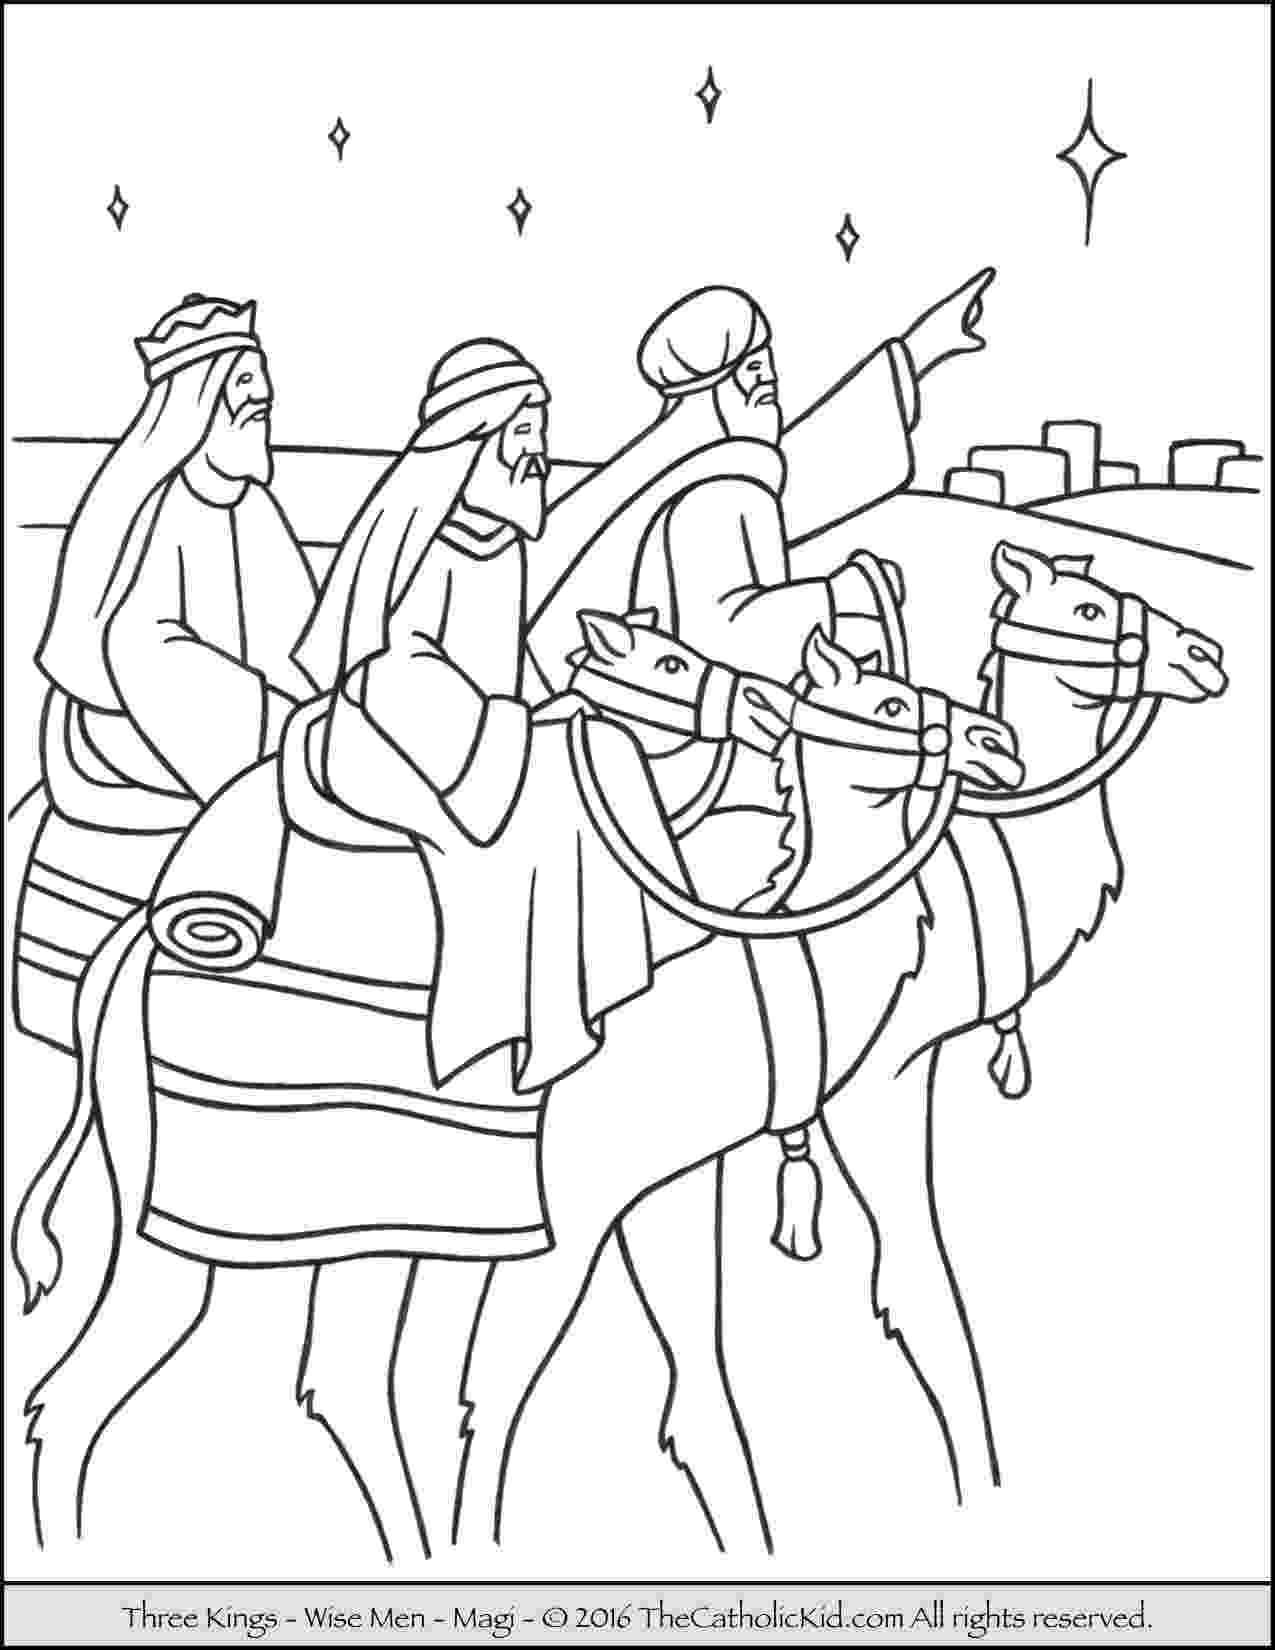 3 wise men coloring the three wise men 4 coloring page coloringcrewcom wise coloring 3 men